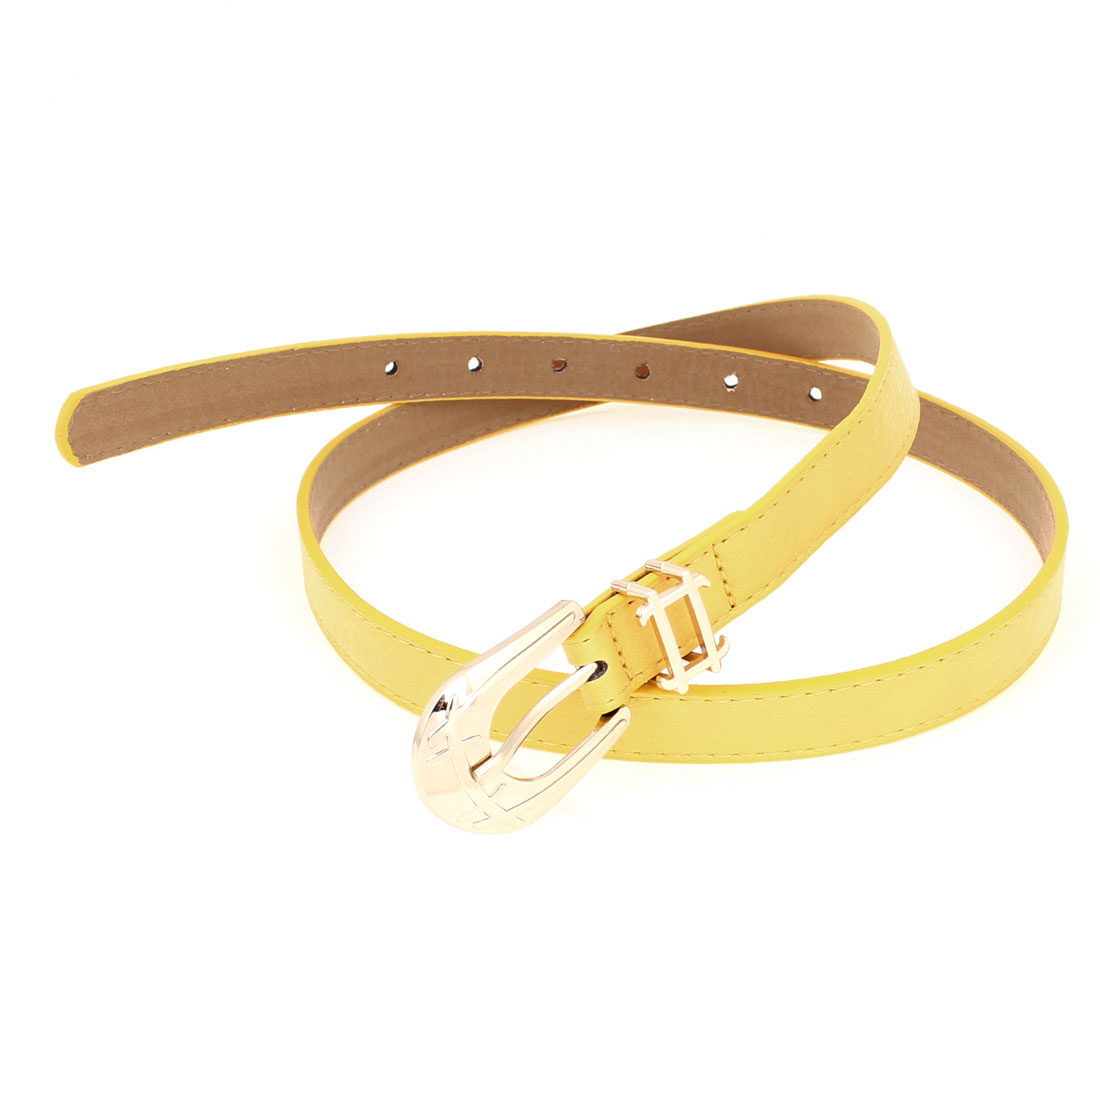 Single Prong Buckle Yellow Faux Leather Adjustable Thin Waist Belt for Women